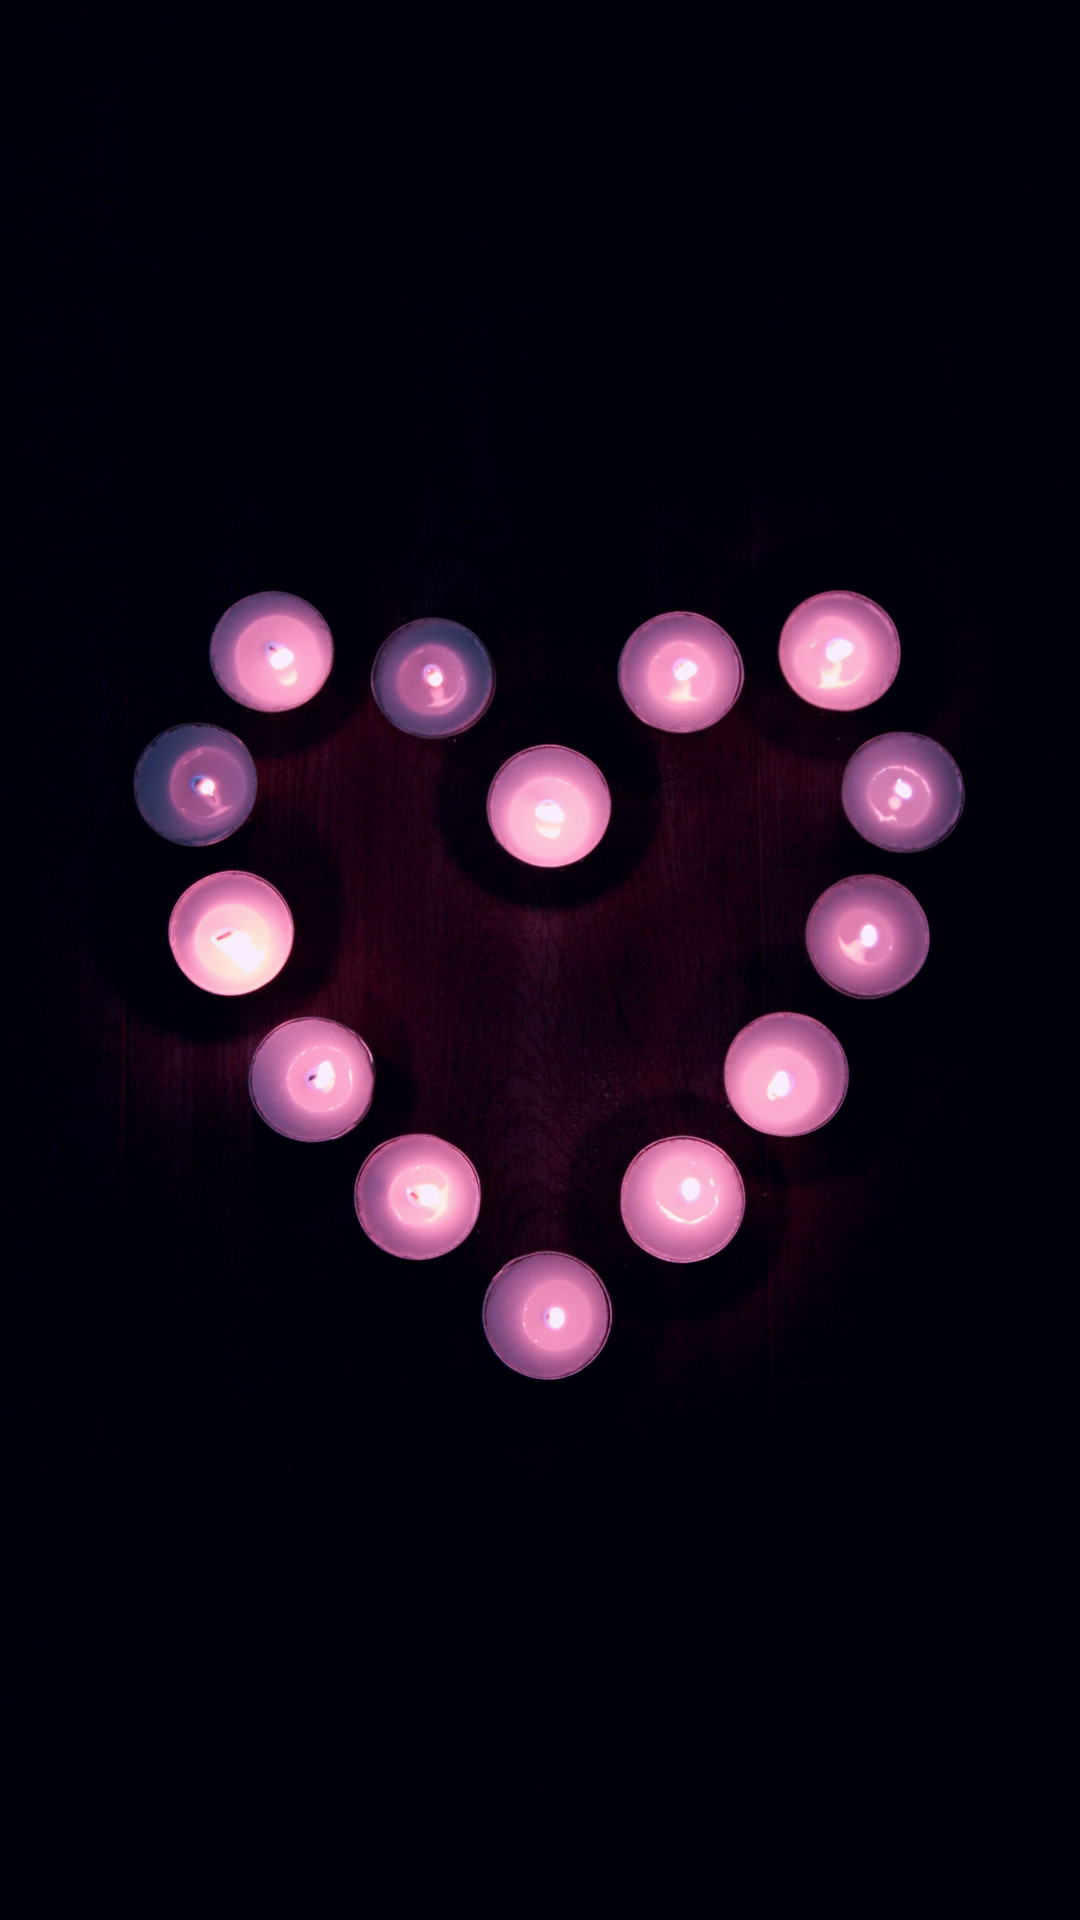 Free Candles, Heart, Light phone wallpaper by miznic